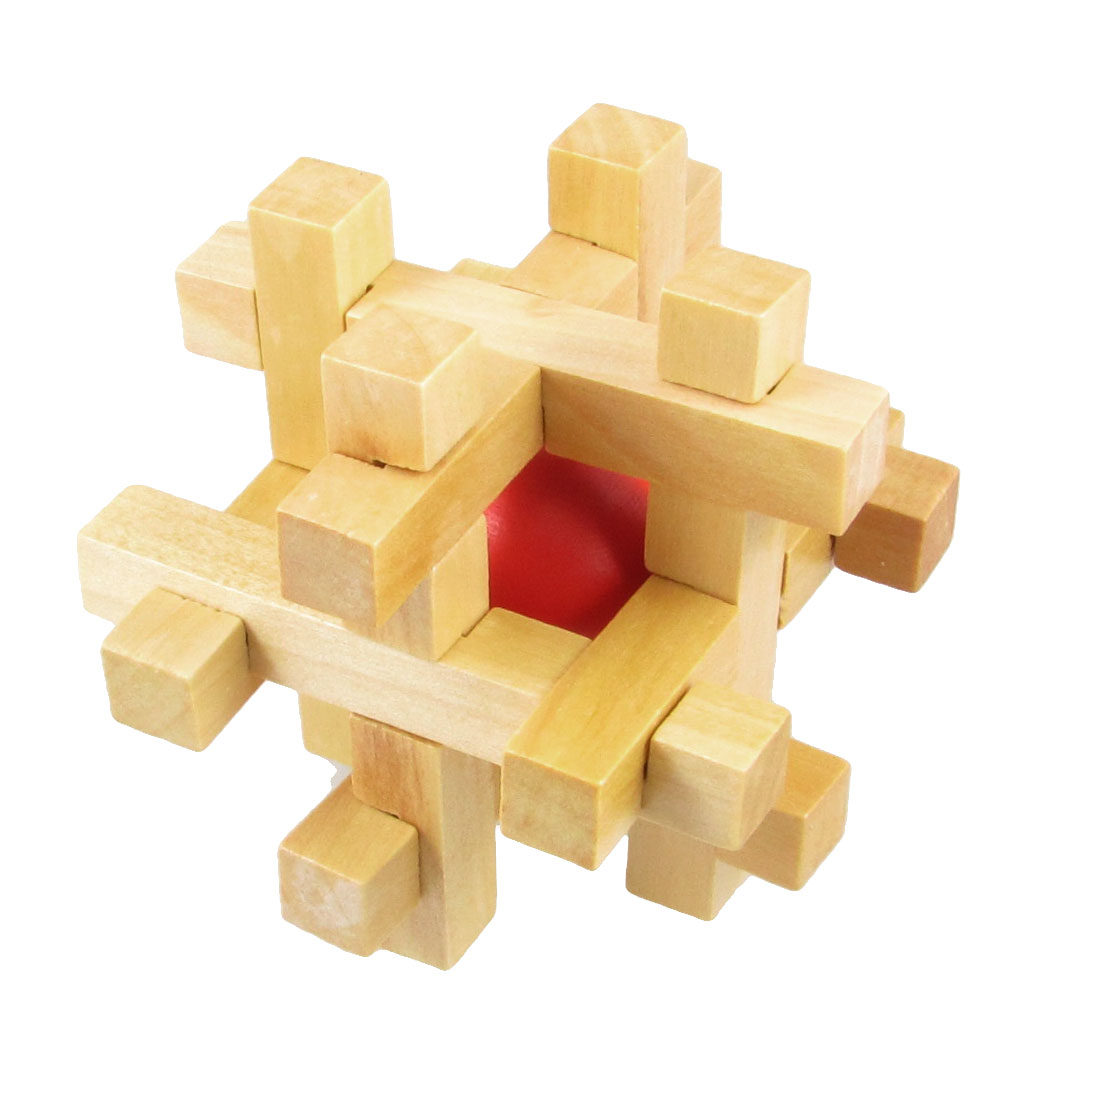 Children IQ Testing Disconnect Wooden Intelligence Puzzle Toy Gift